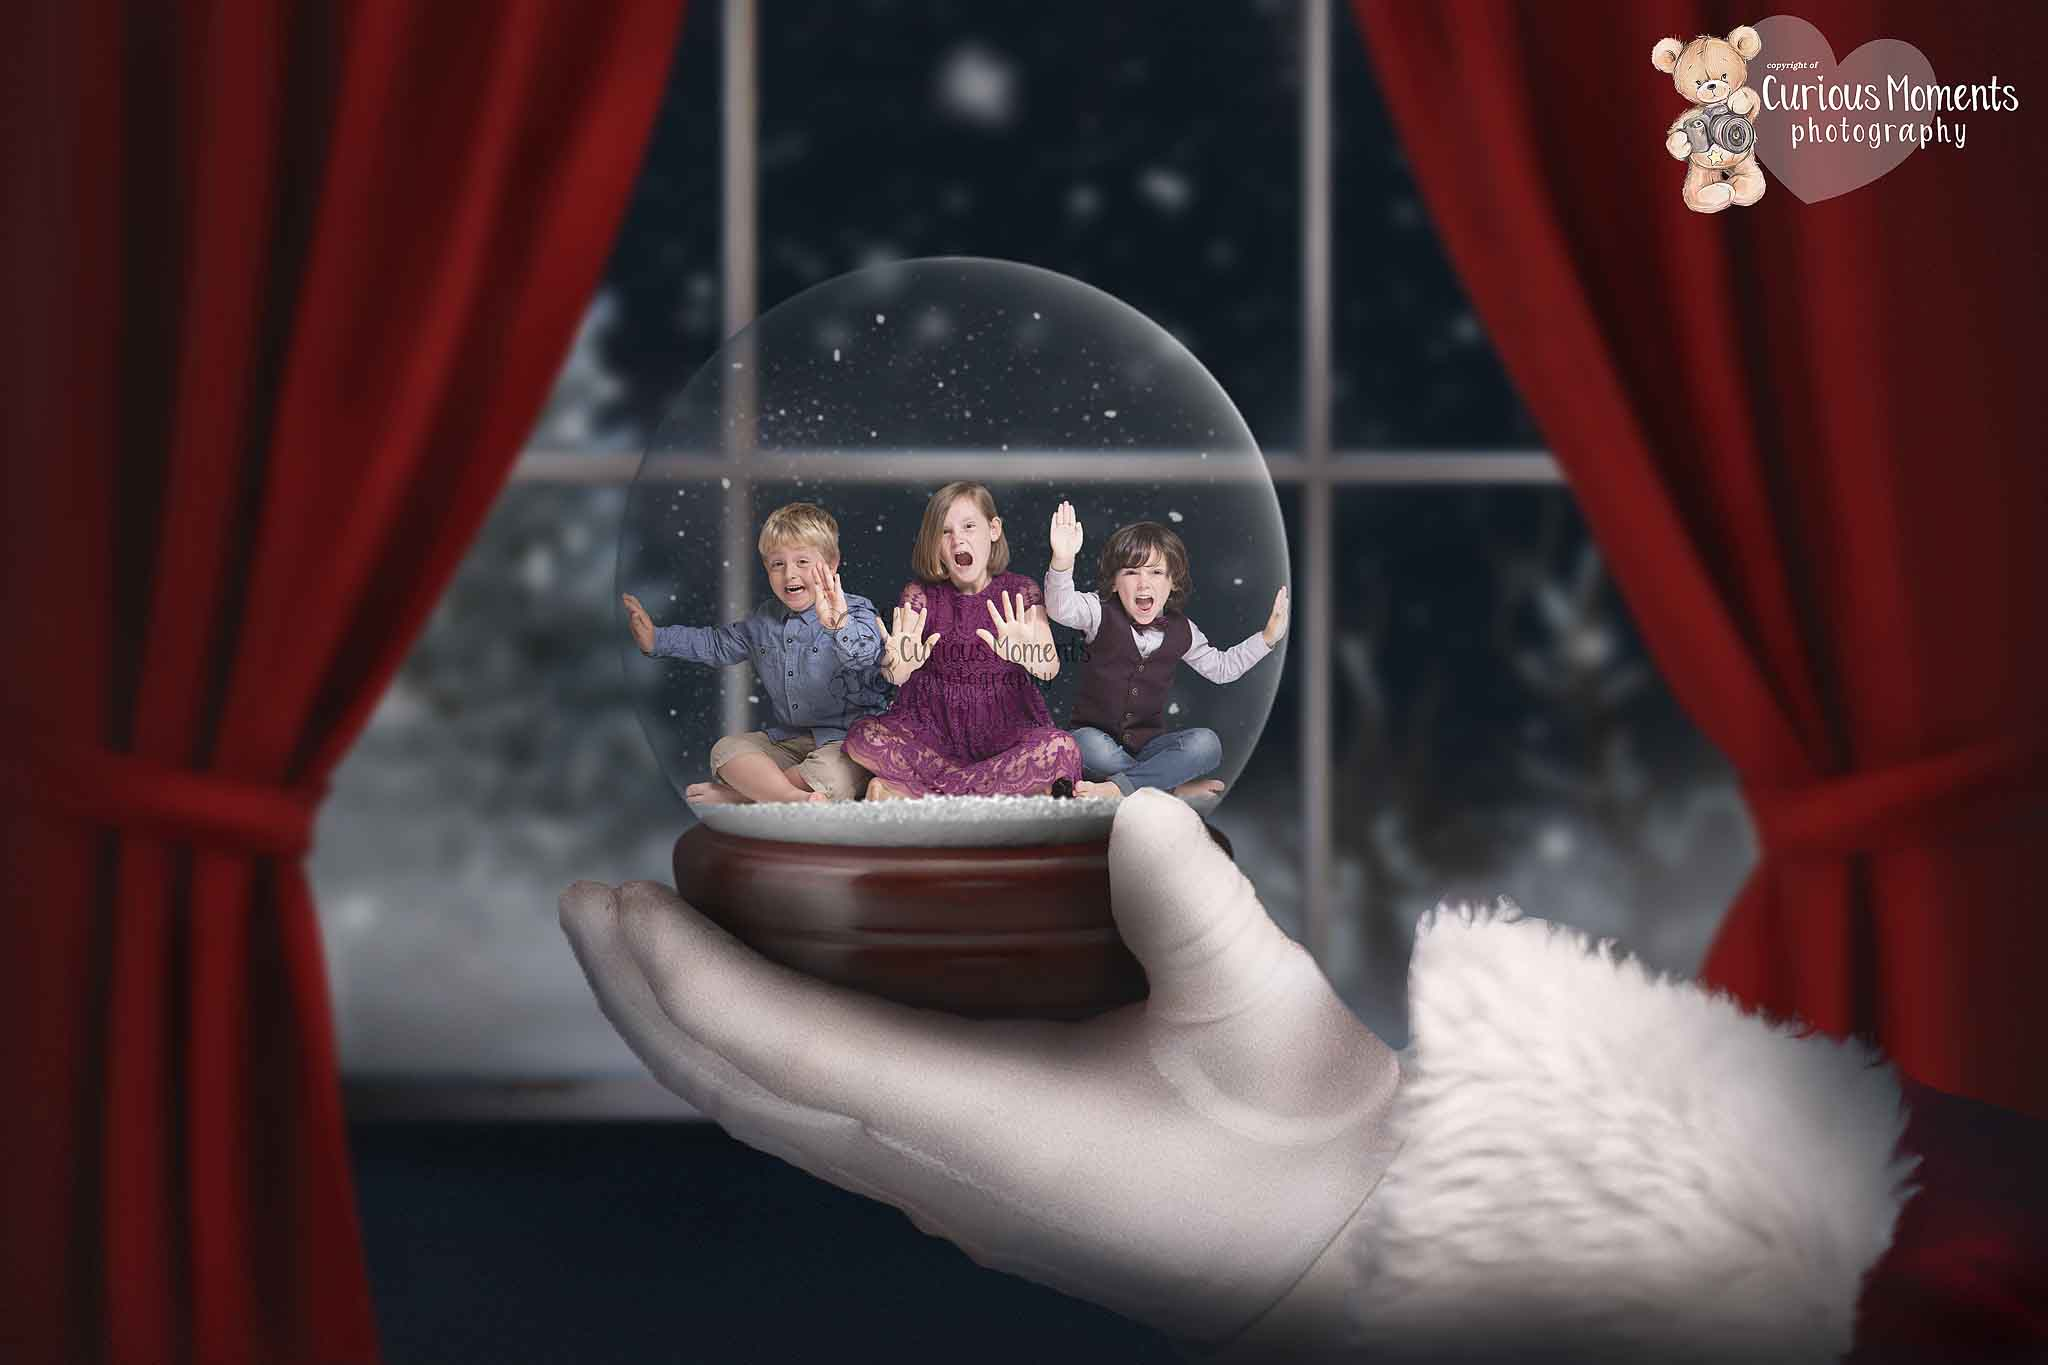 3 children in a snowglobe pretending to try and break free during xmas photo shoot